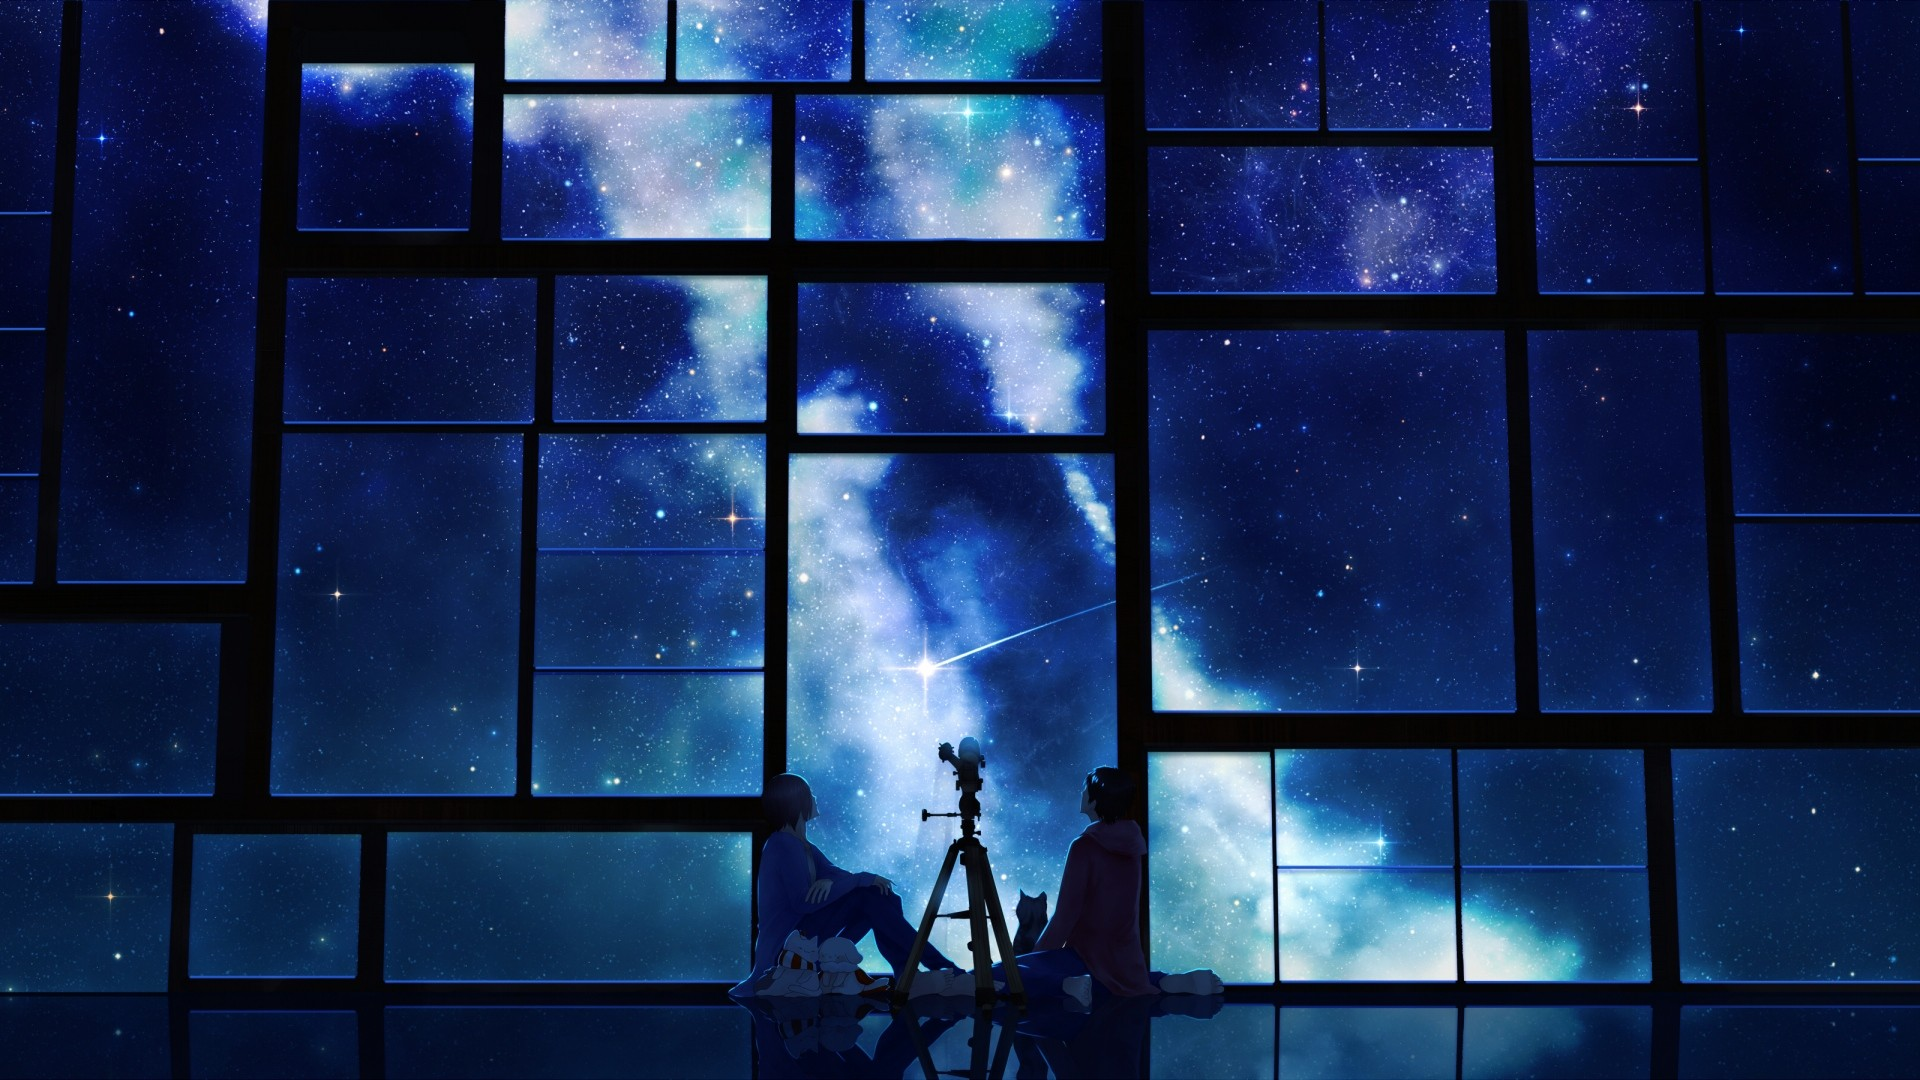 1920x1080 Preview wallpaper tamagosho, sky, stars, telescope, night, window